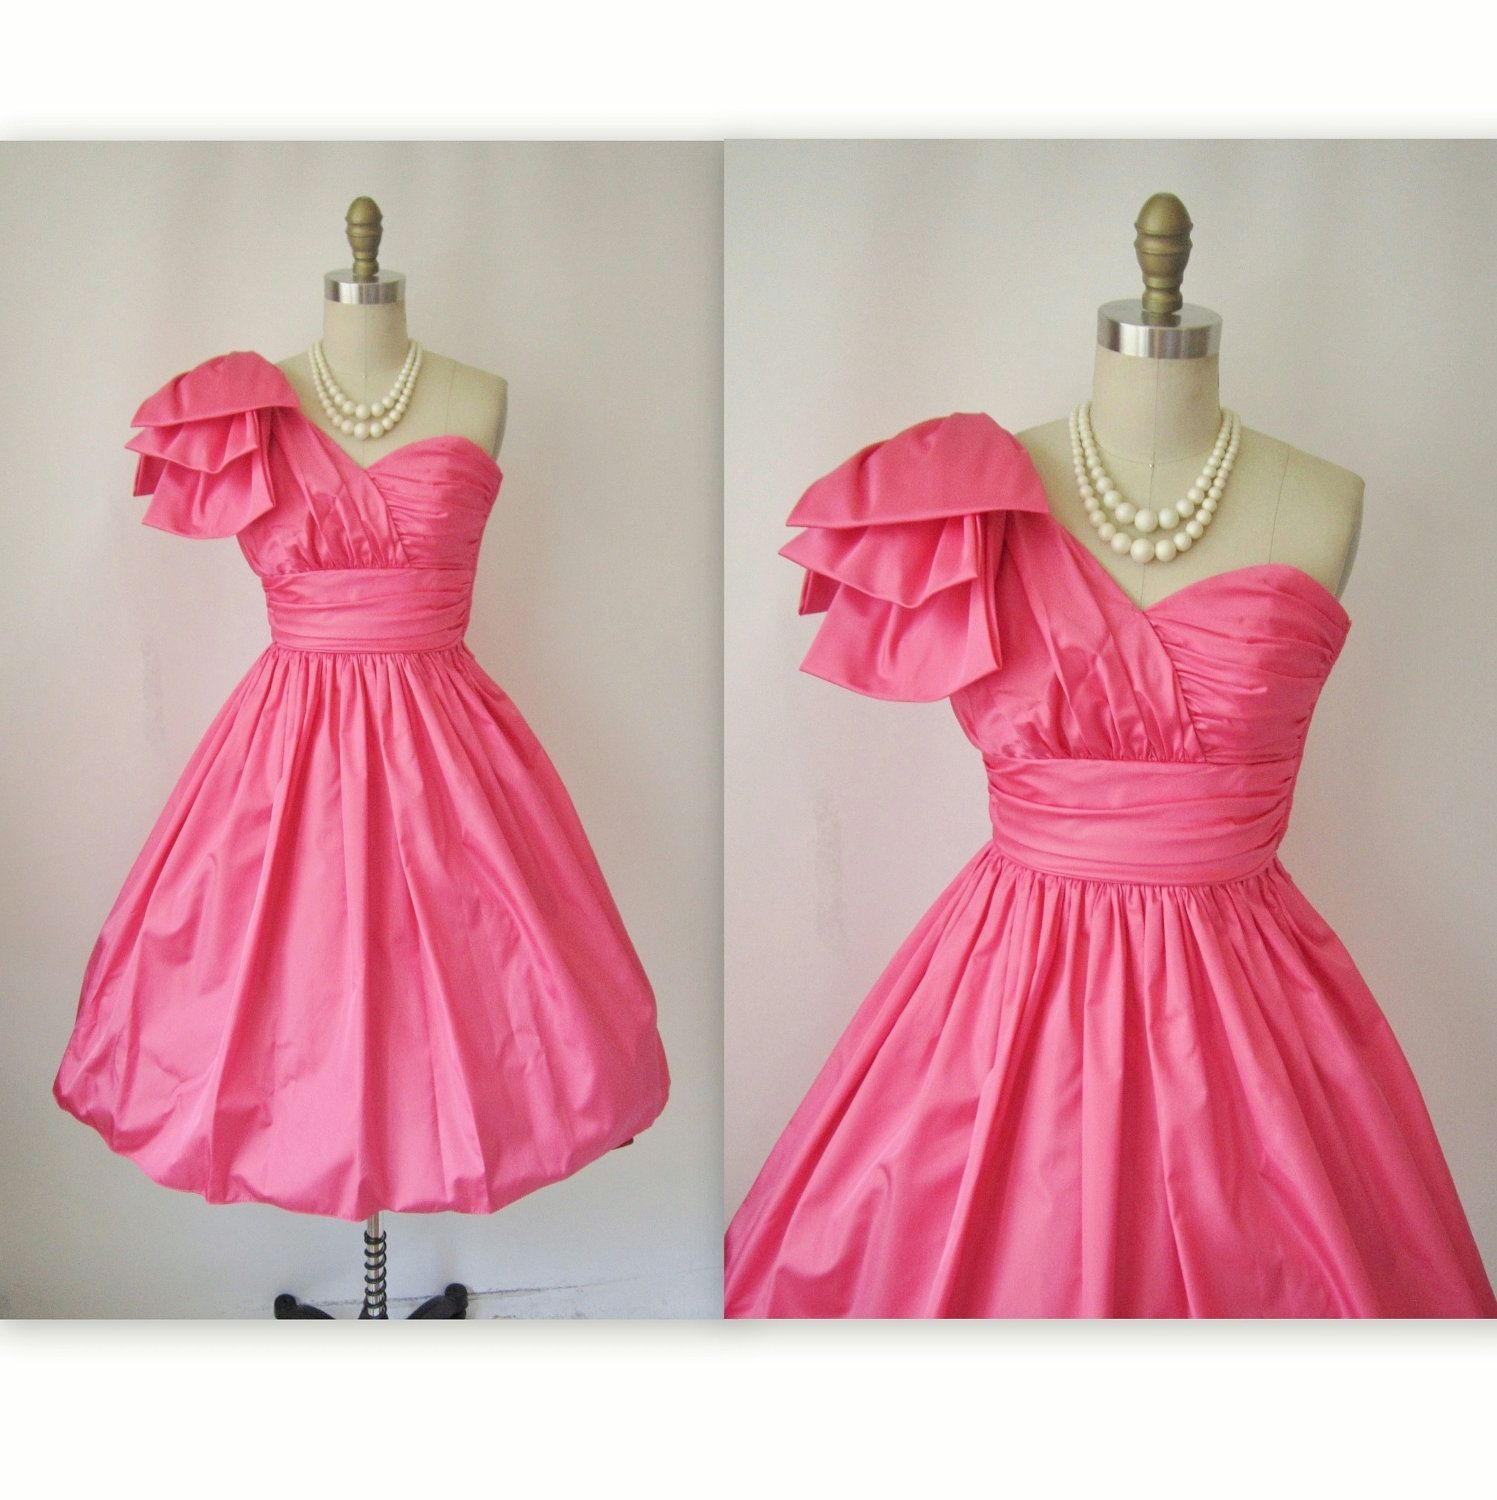 The pink dresses fashion characters pinterest prom dresses